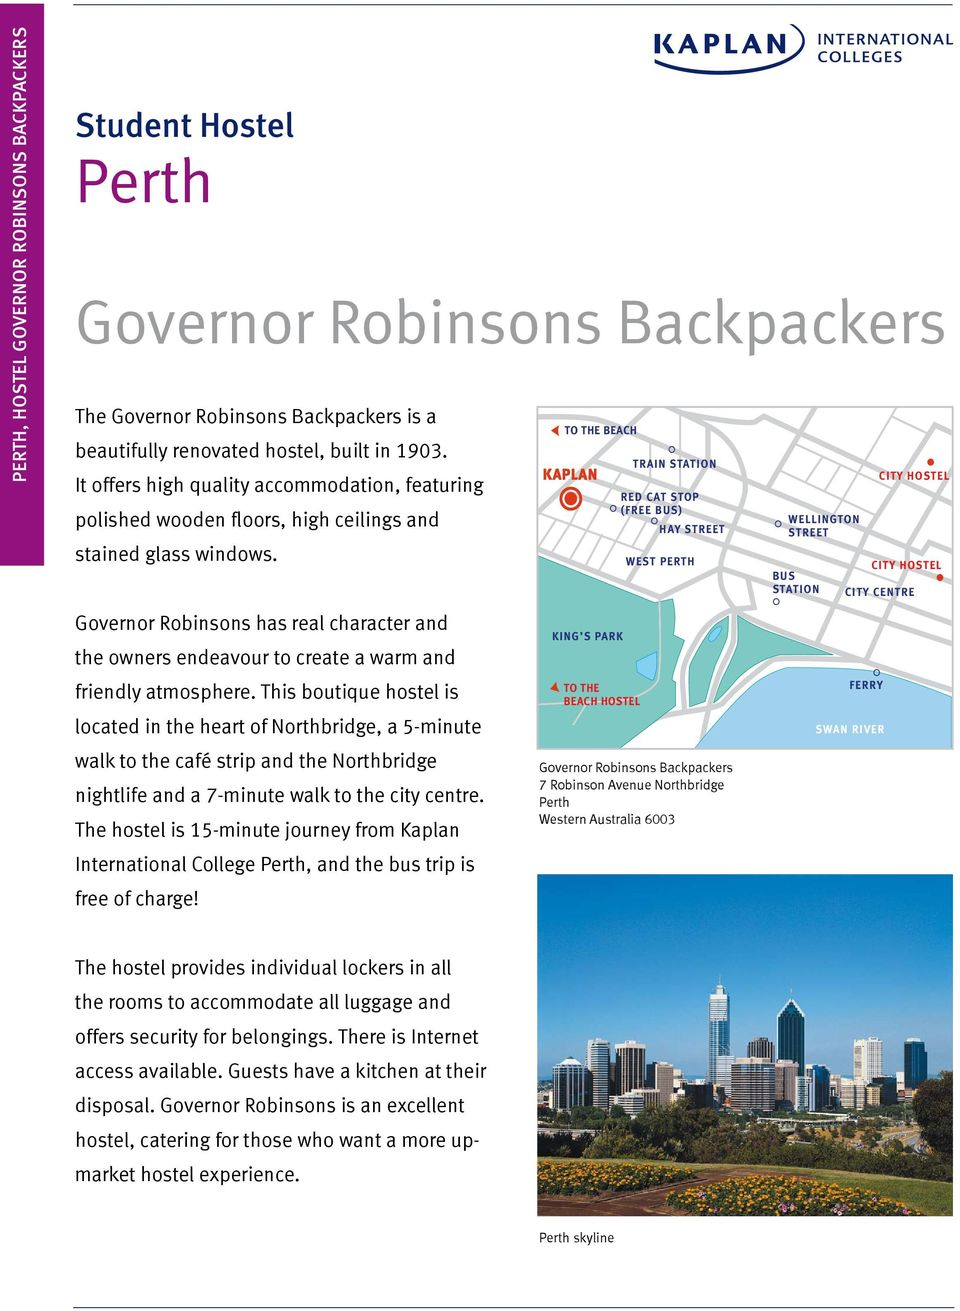 Governor Robinsons has real character and the owners endeavour to create a  warm and friendly atmosphere